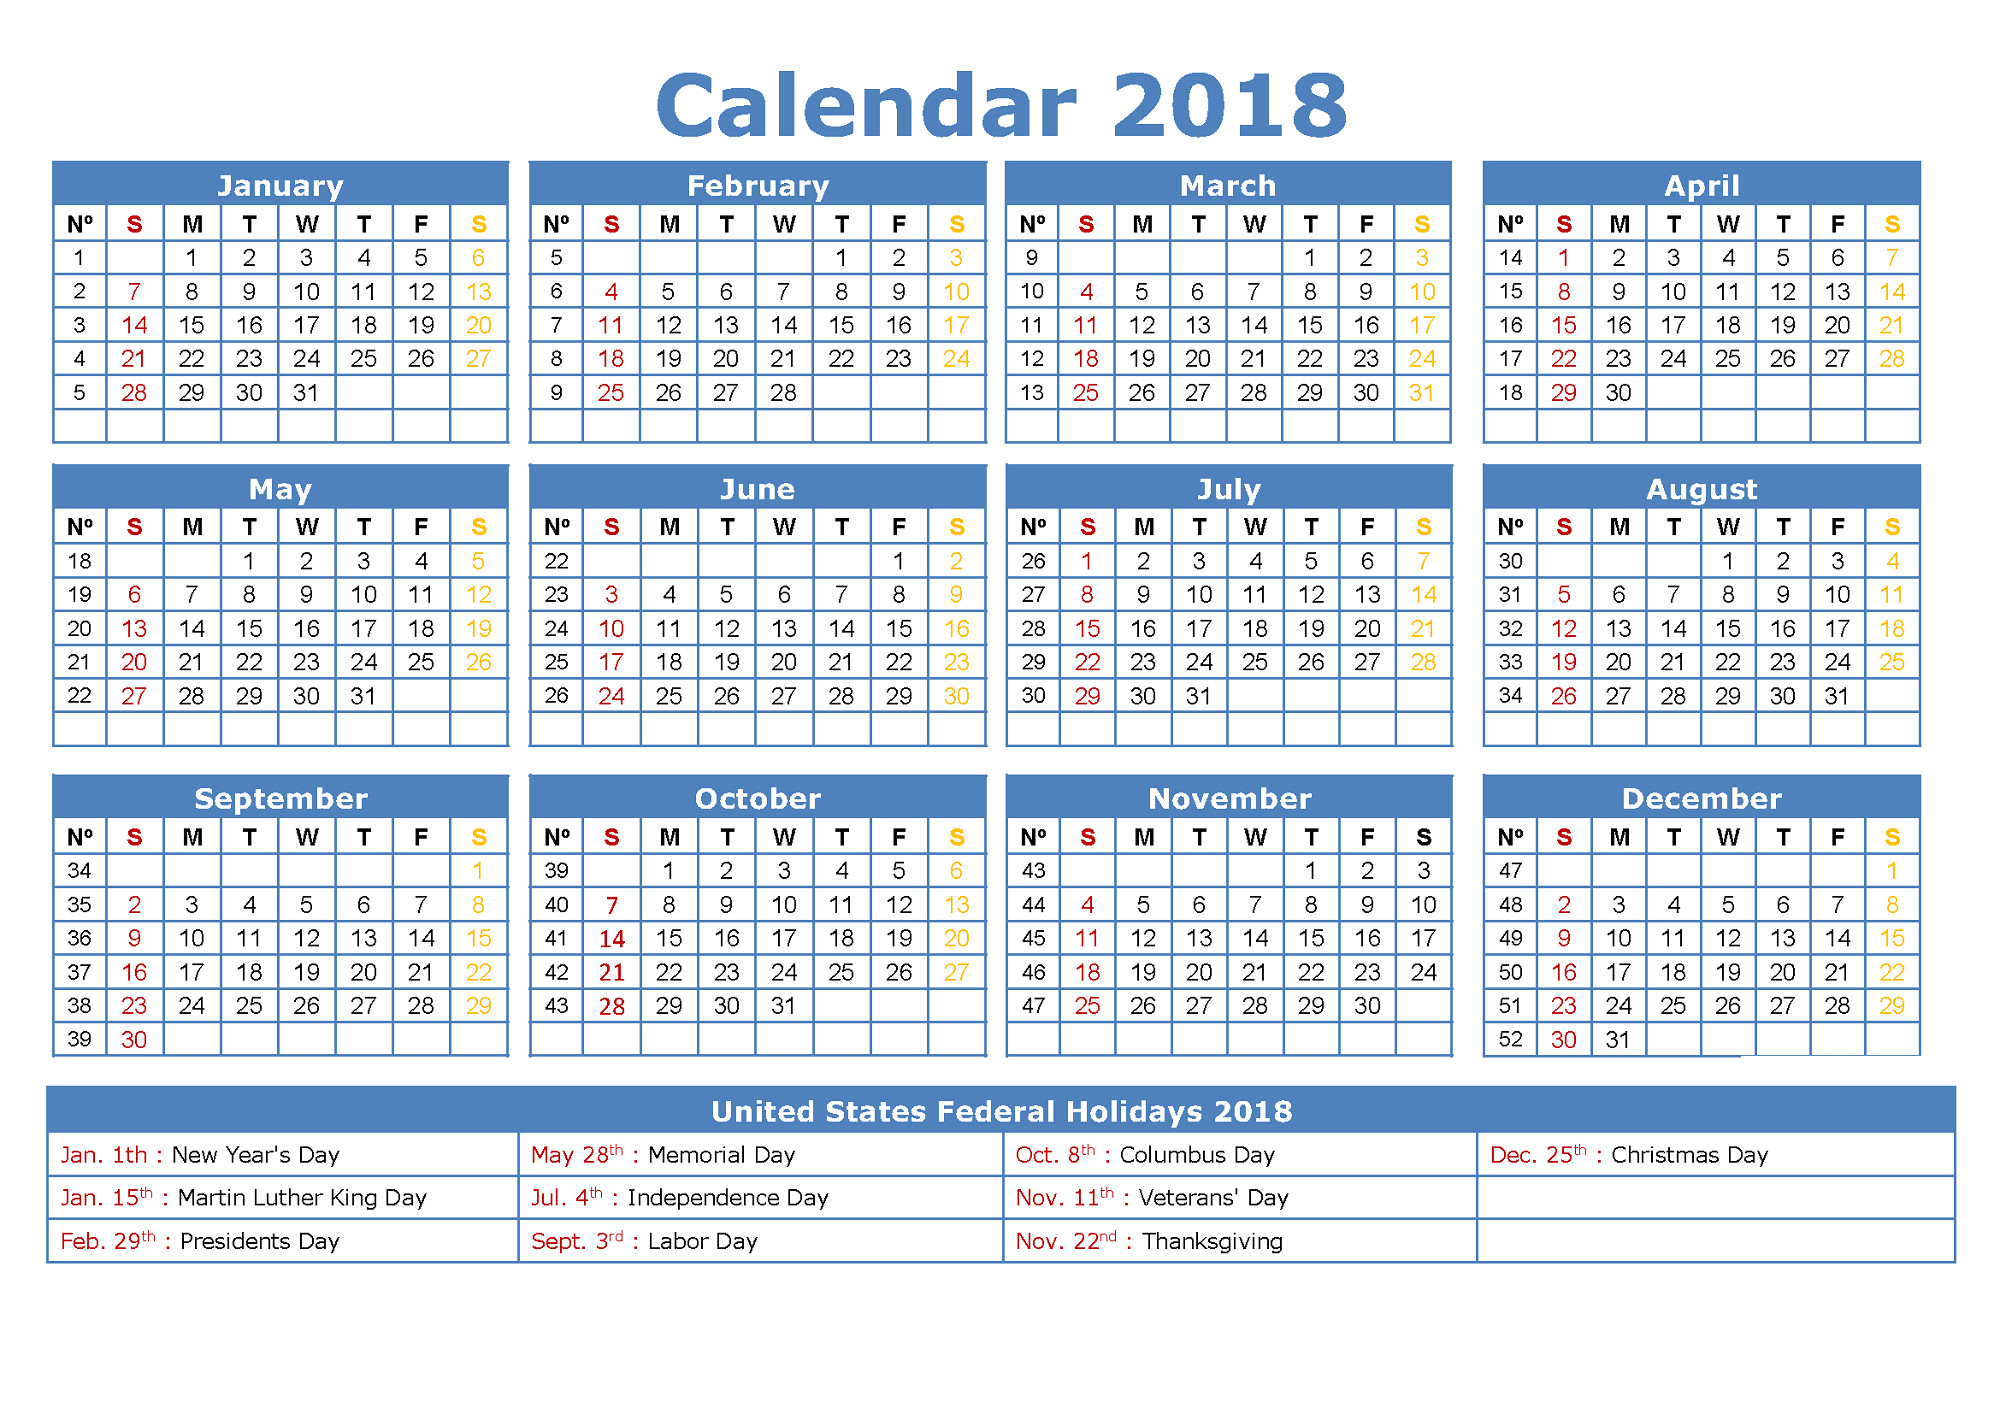 Wallpaper Calendar March 2018 73 images 2000x1414